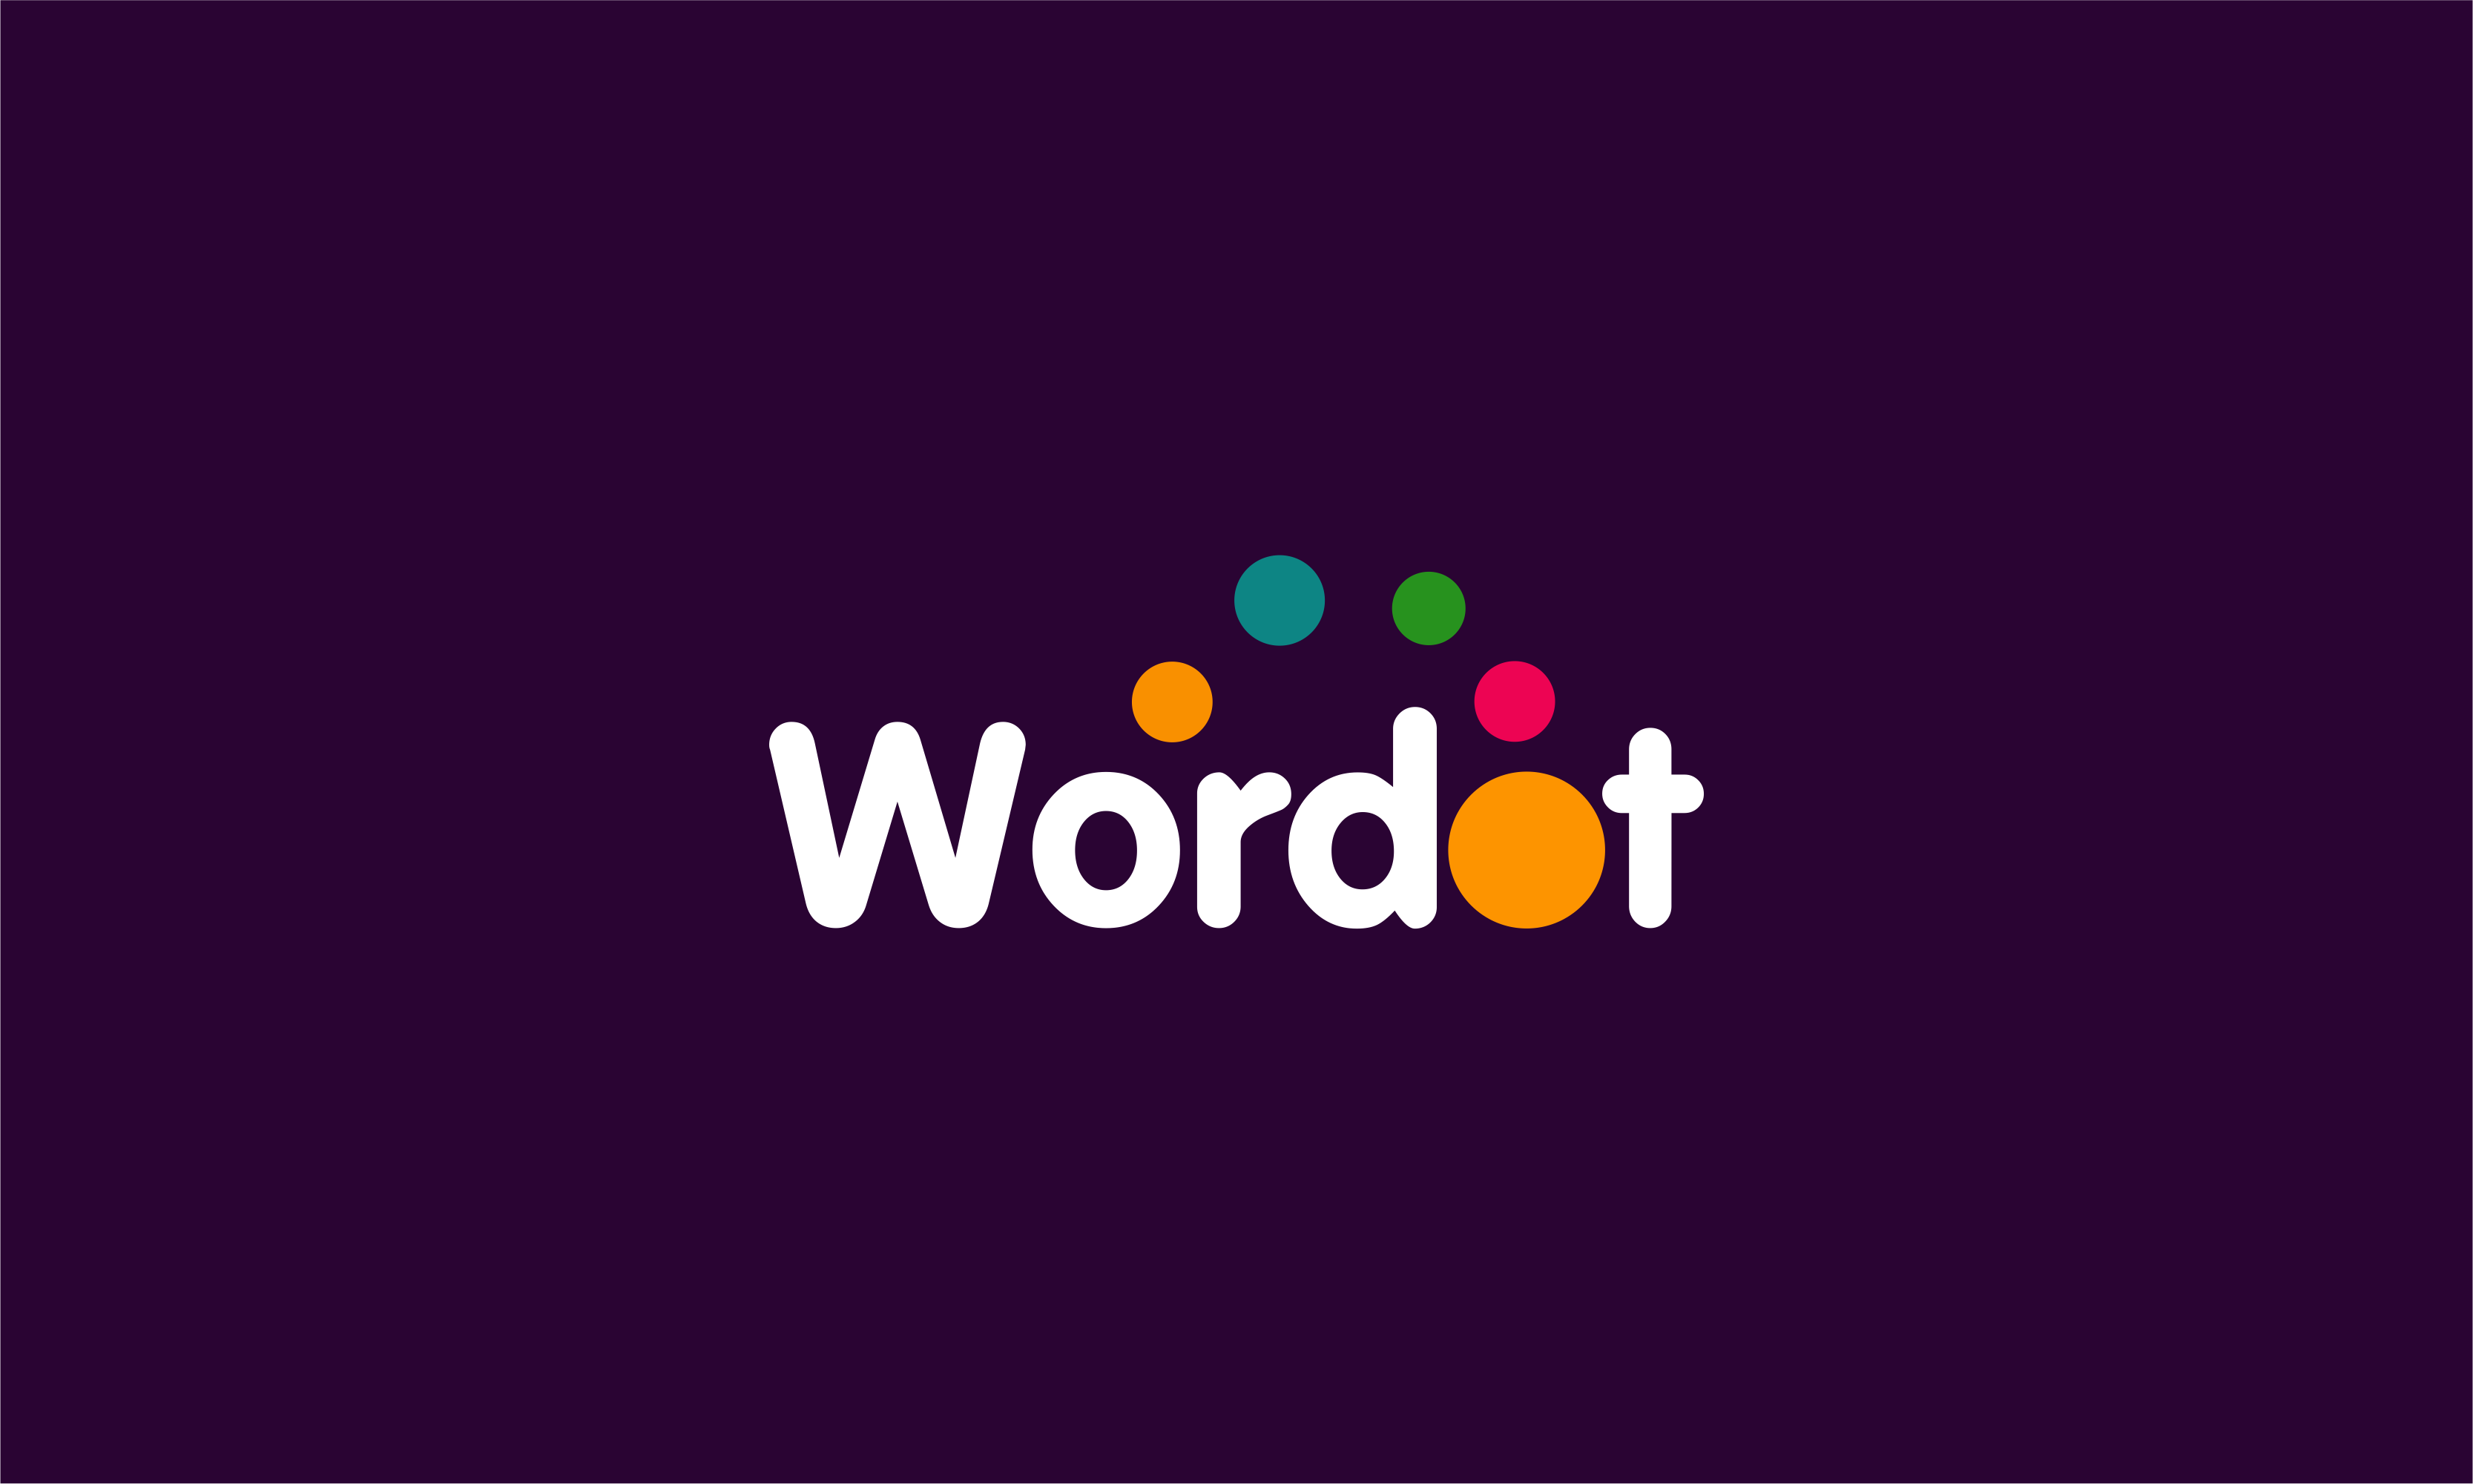 wordot logo